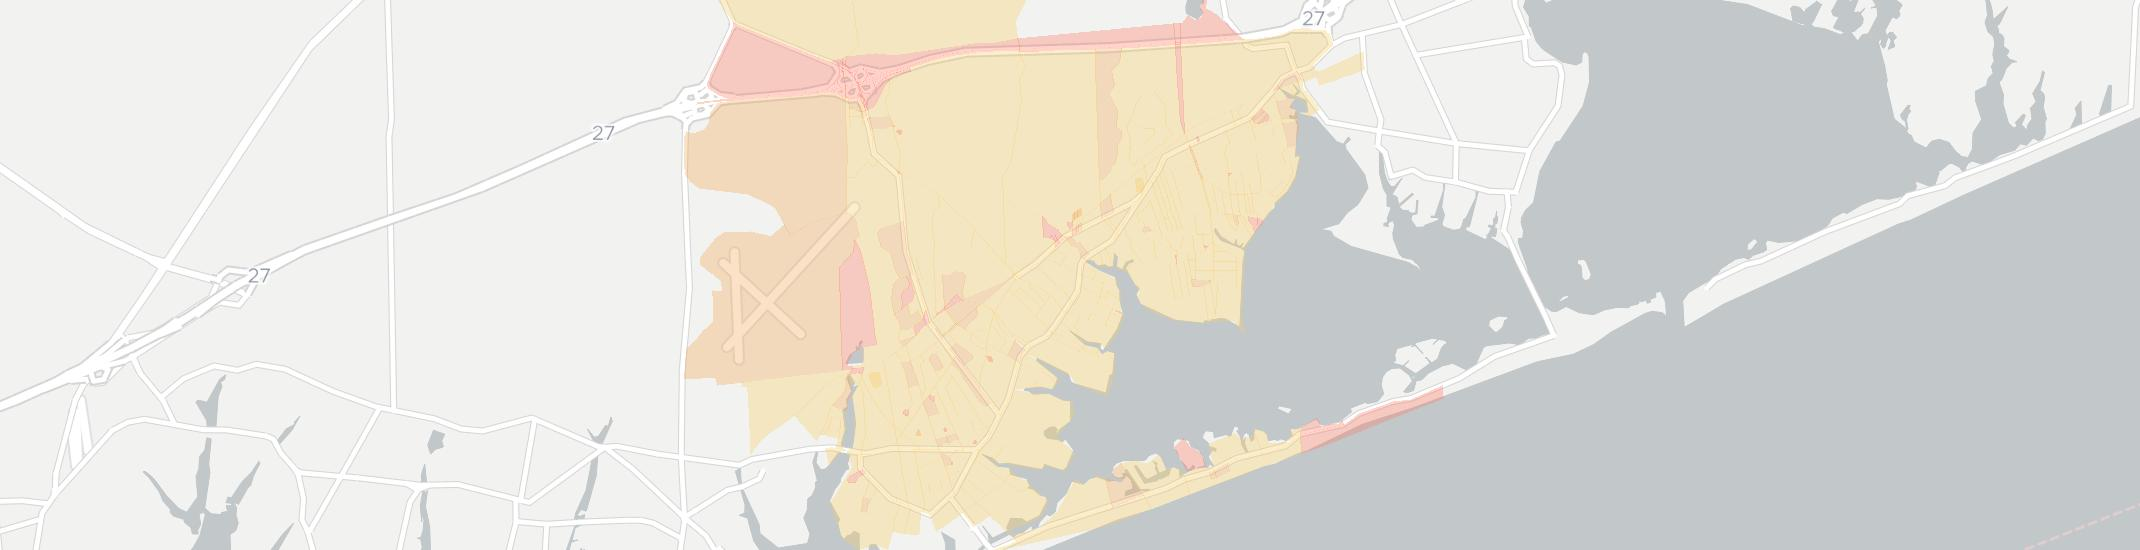 East Quogue Internet Competition Map. Click for interactive map.